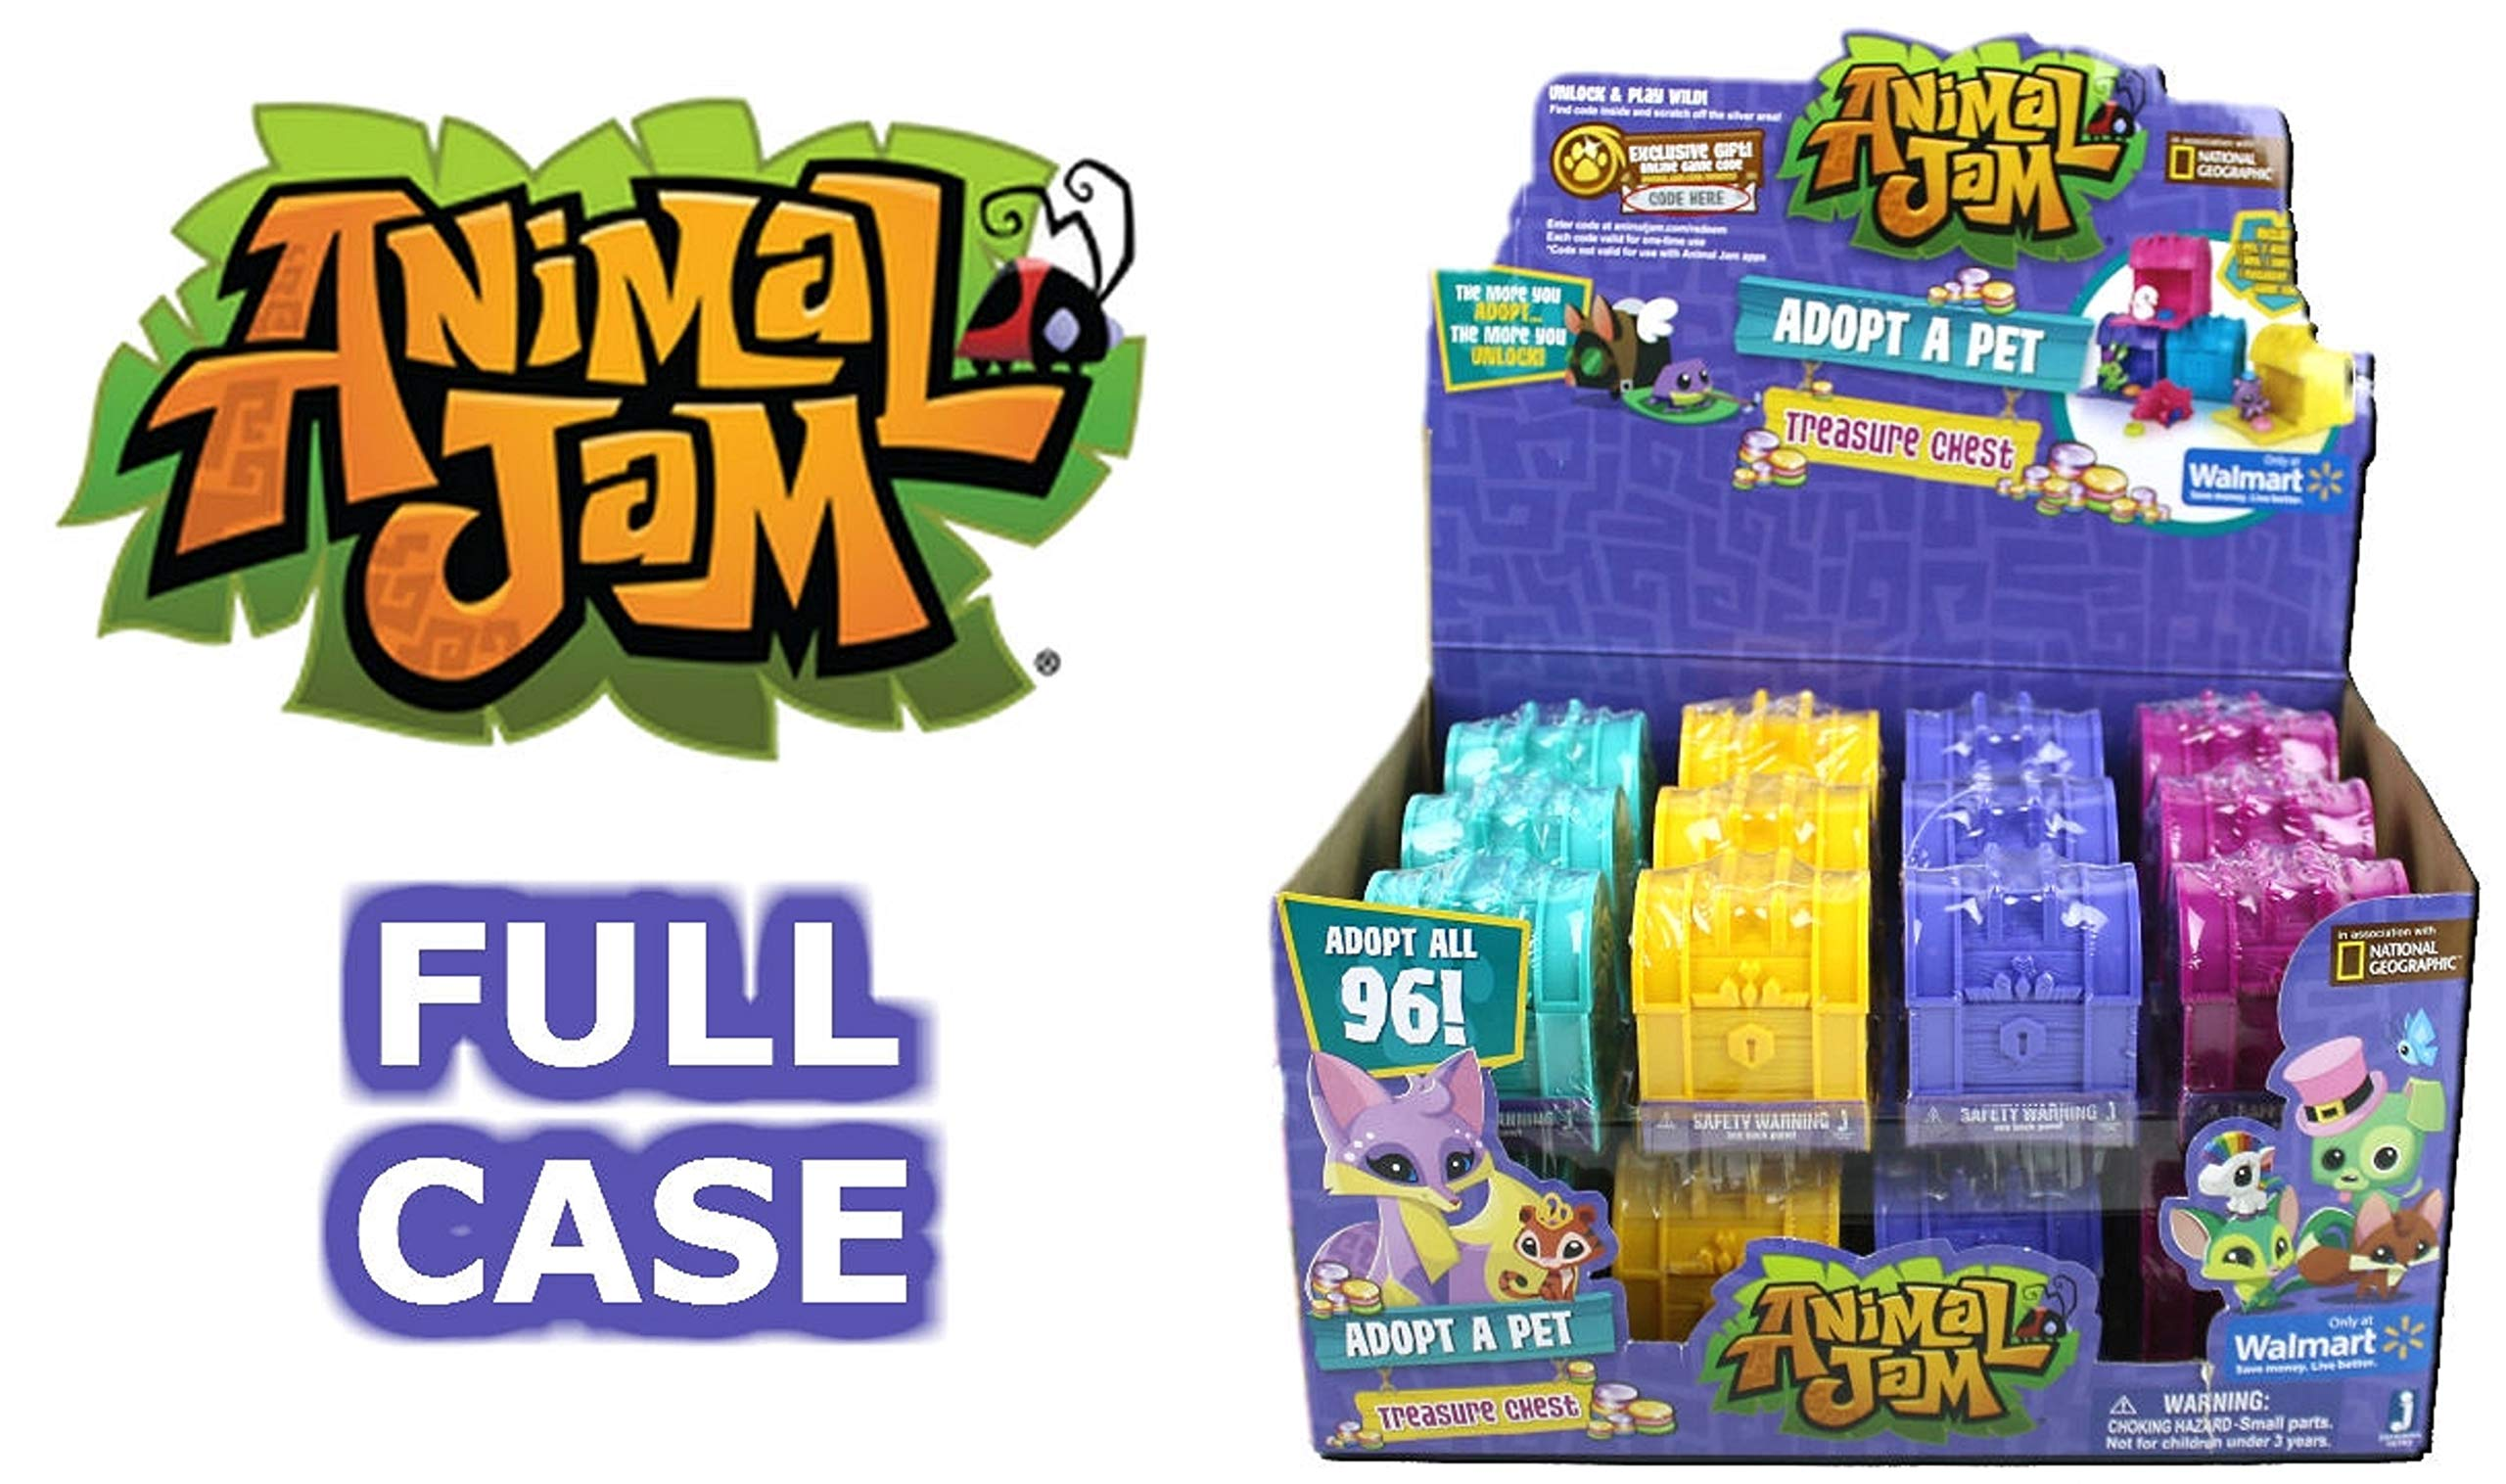 Animal Jam Adopt a Pet Treasure Chest Sealed Mystery Box of 24 Chests Game Code by Animal Jam (Image #1)